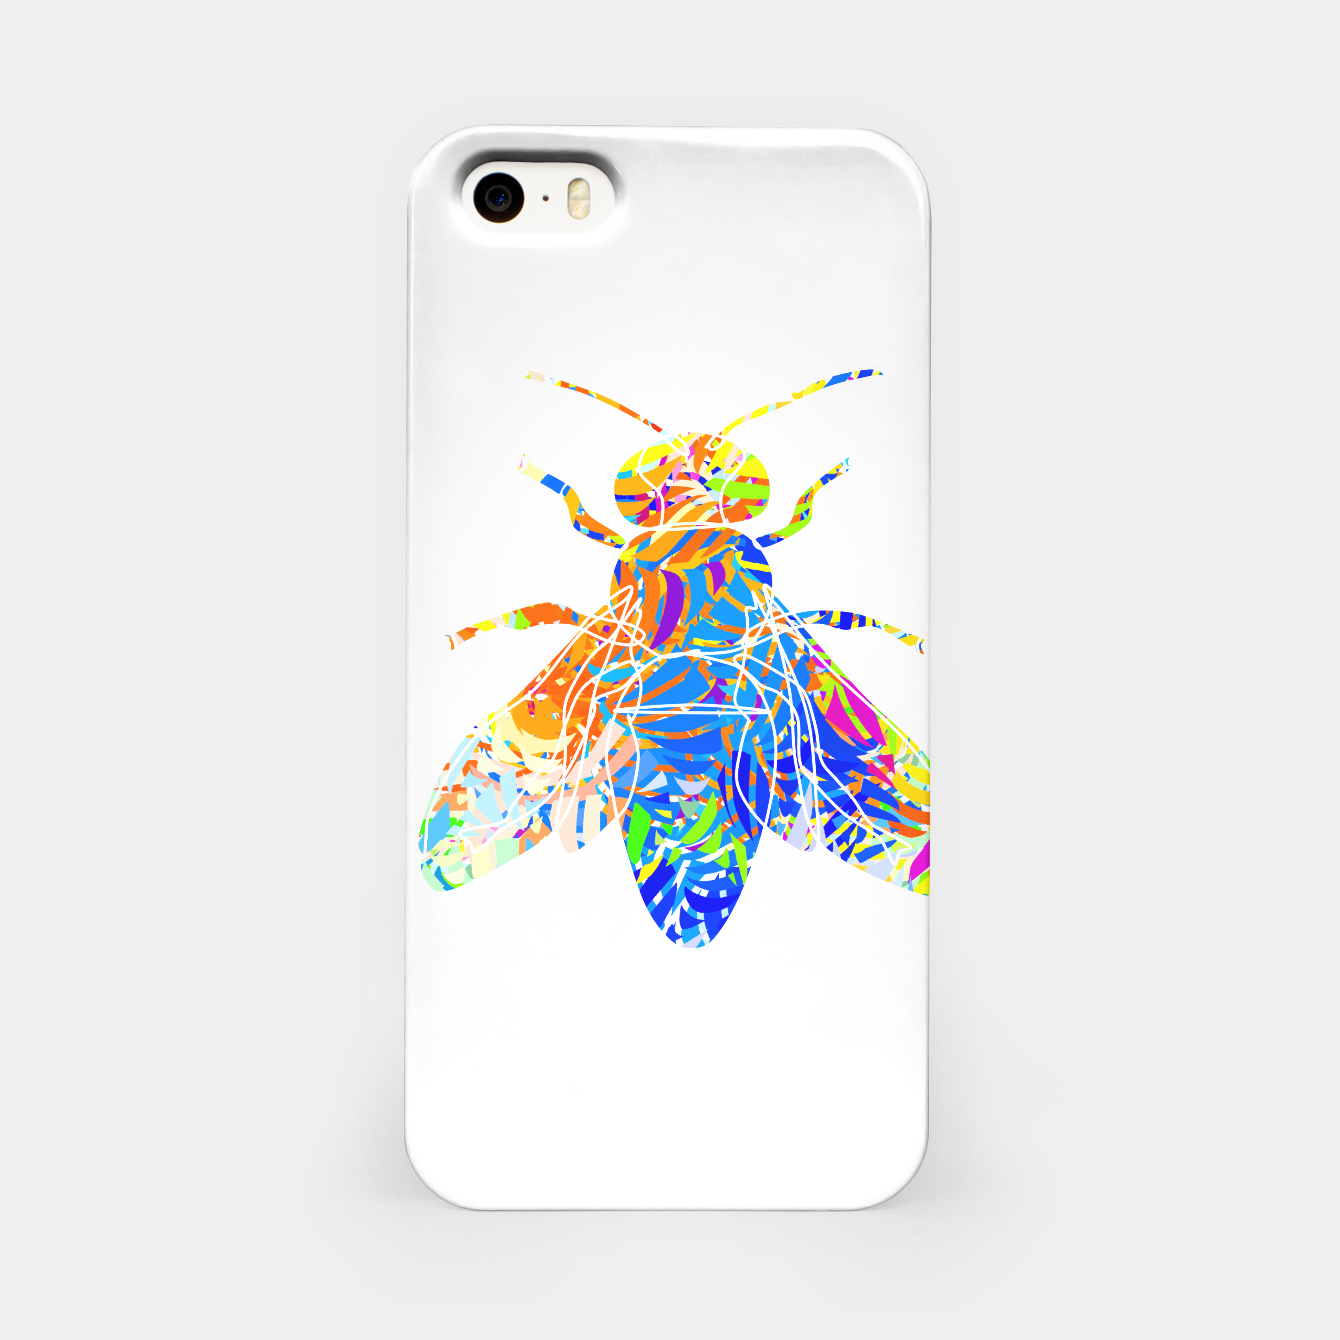 Image of bs2 iPhone Case - Live Heroes